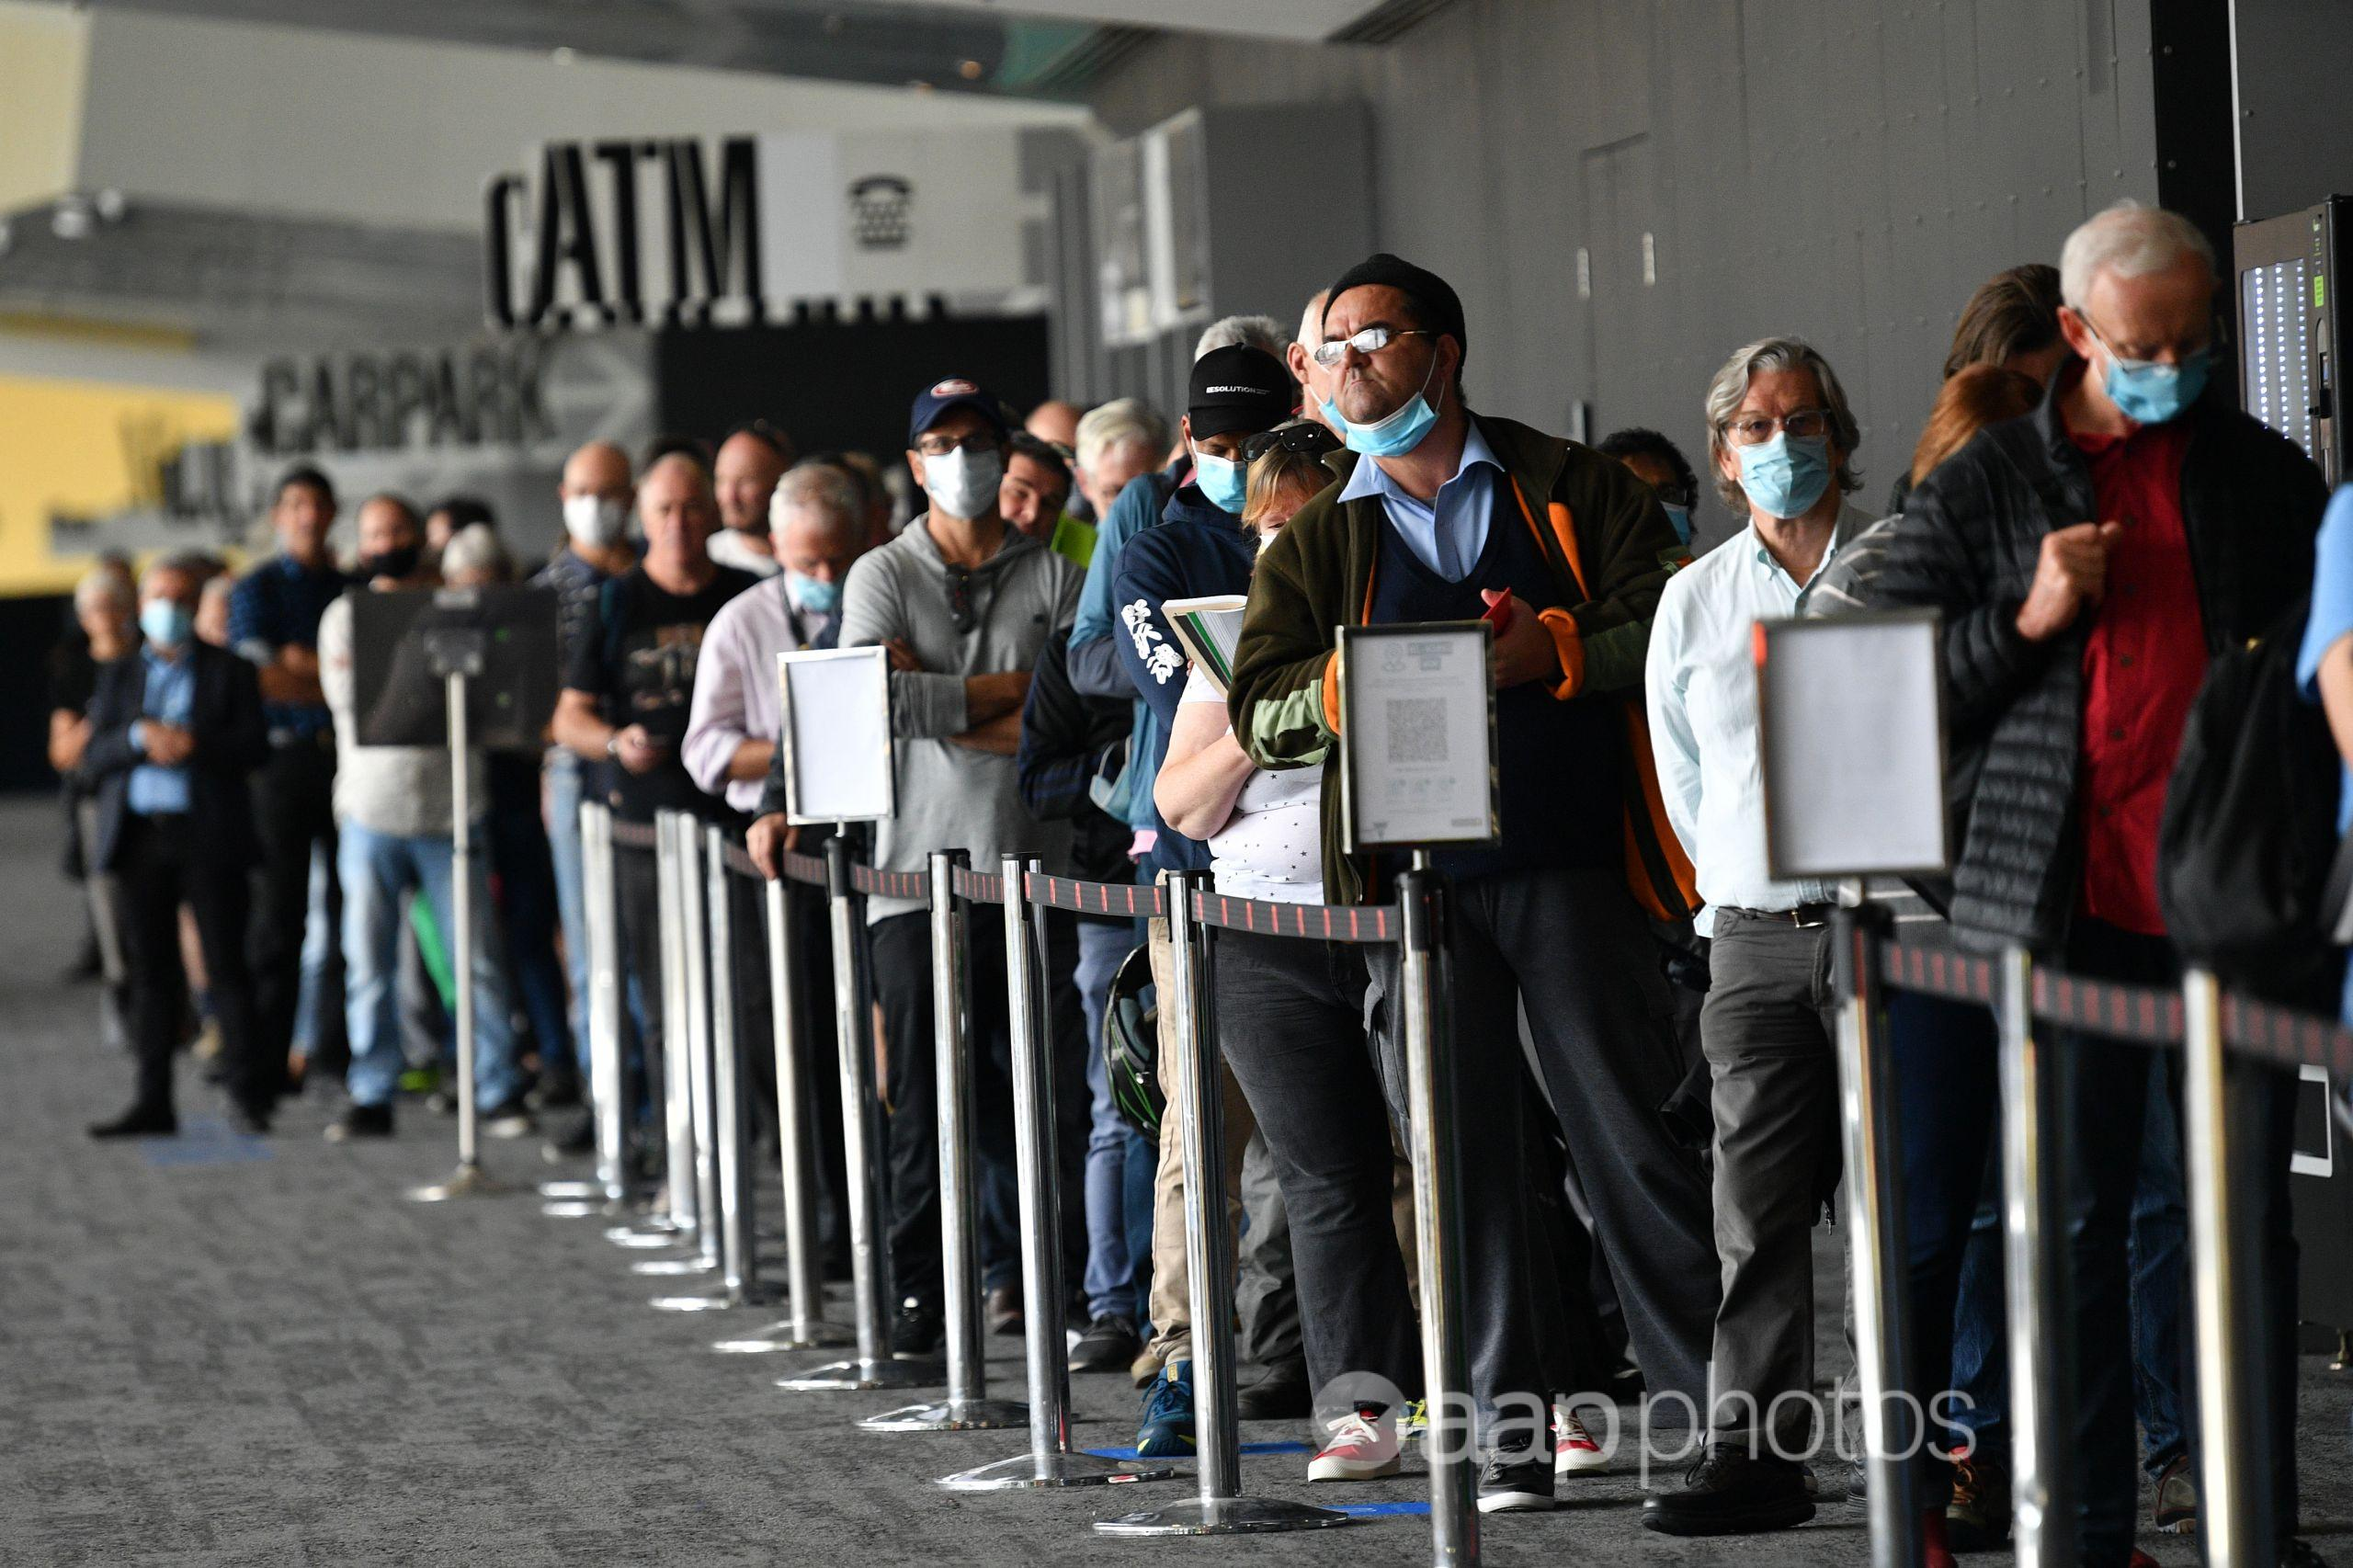 People waiting in a line for vaccination at the Melbourne